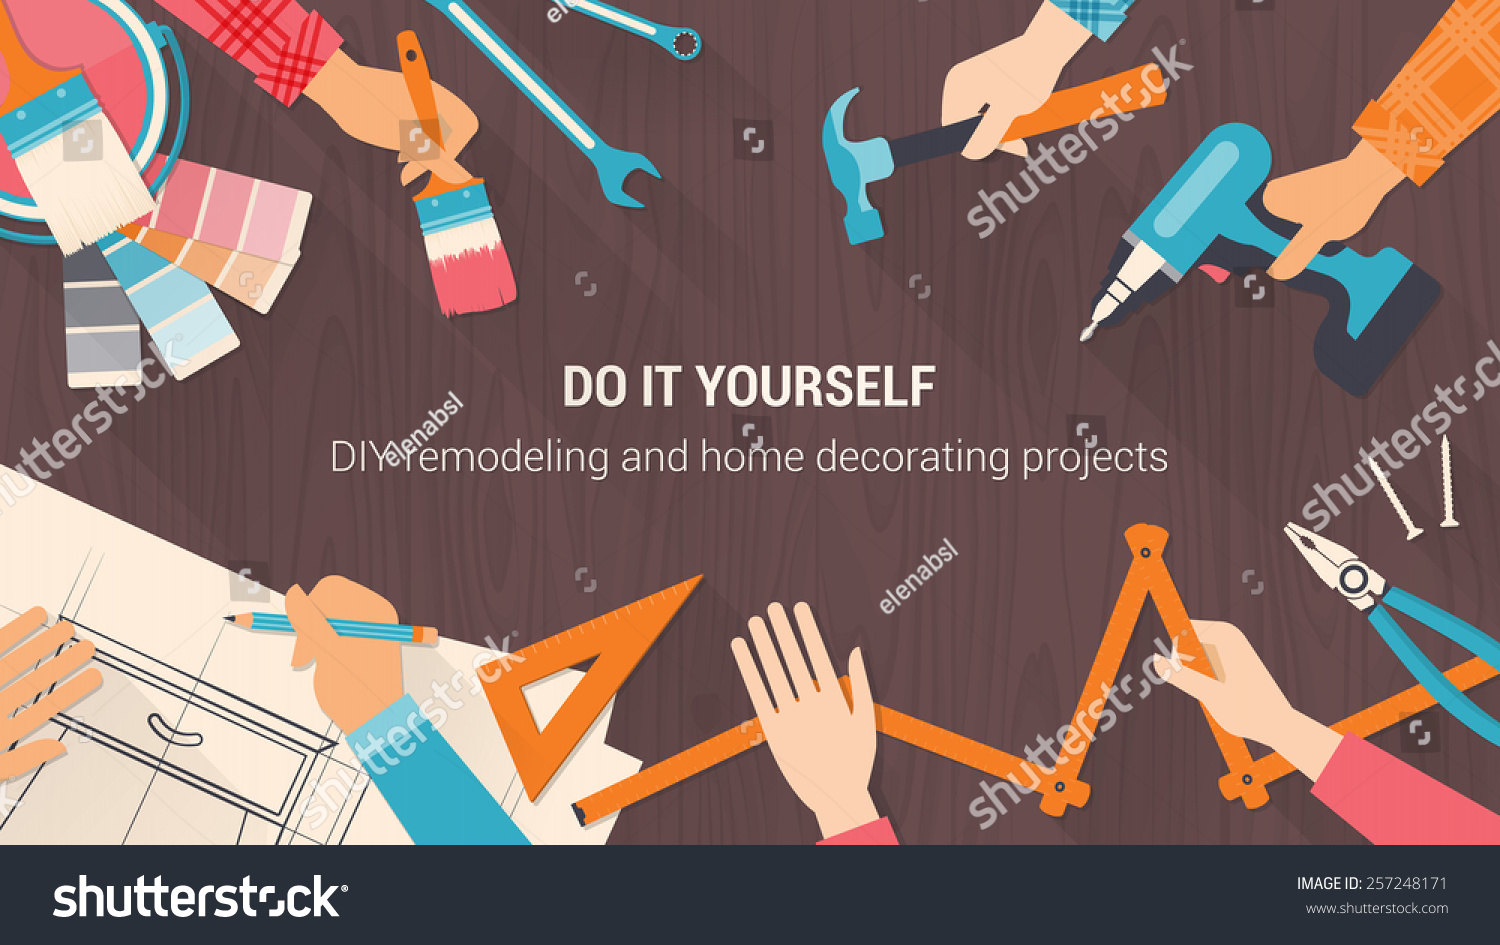 Diy banner people working together using stock vector 257248171 diy banner people working together using stock vector 257248171 shutterstock solutioingenieria Image collections